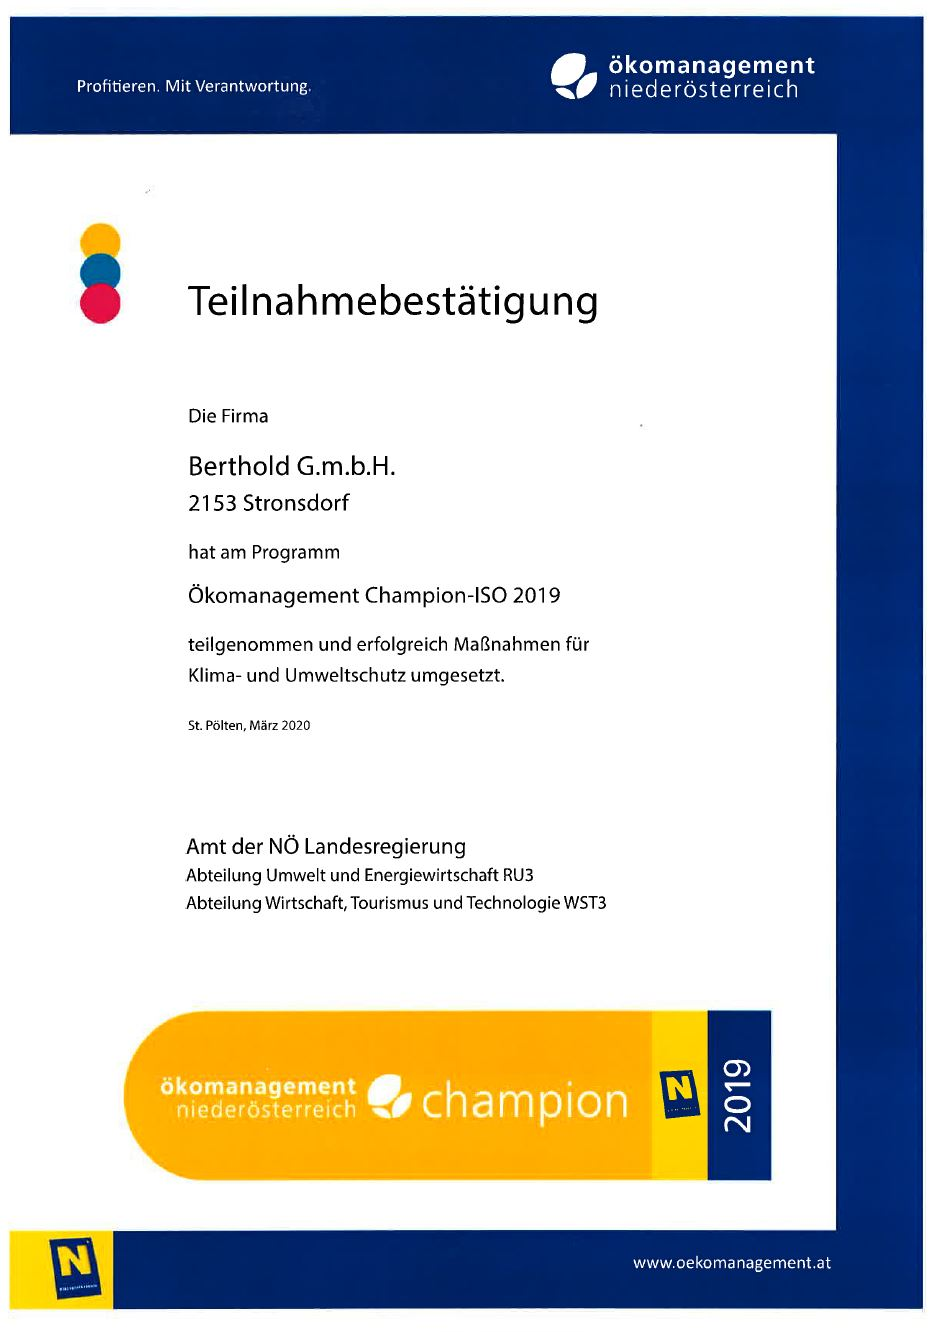 Ökomanagement Champion-ISO 2019